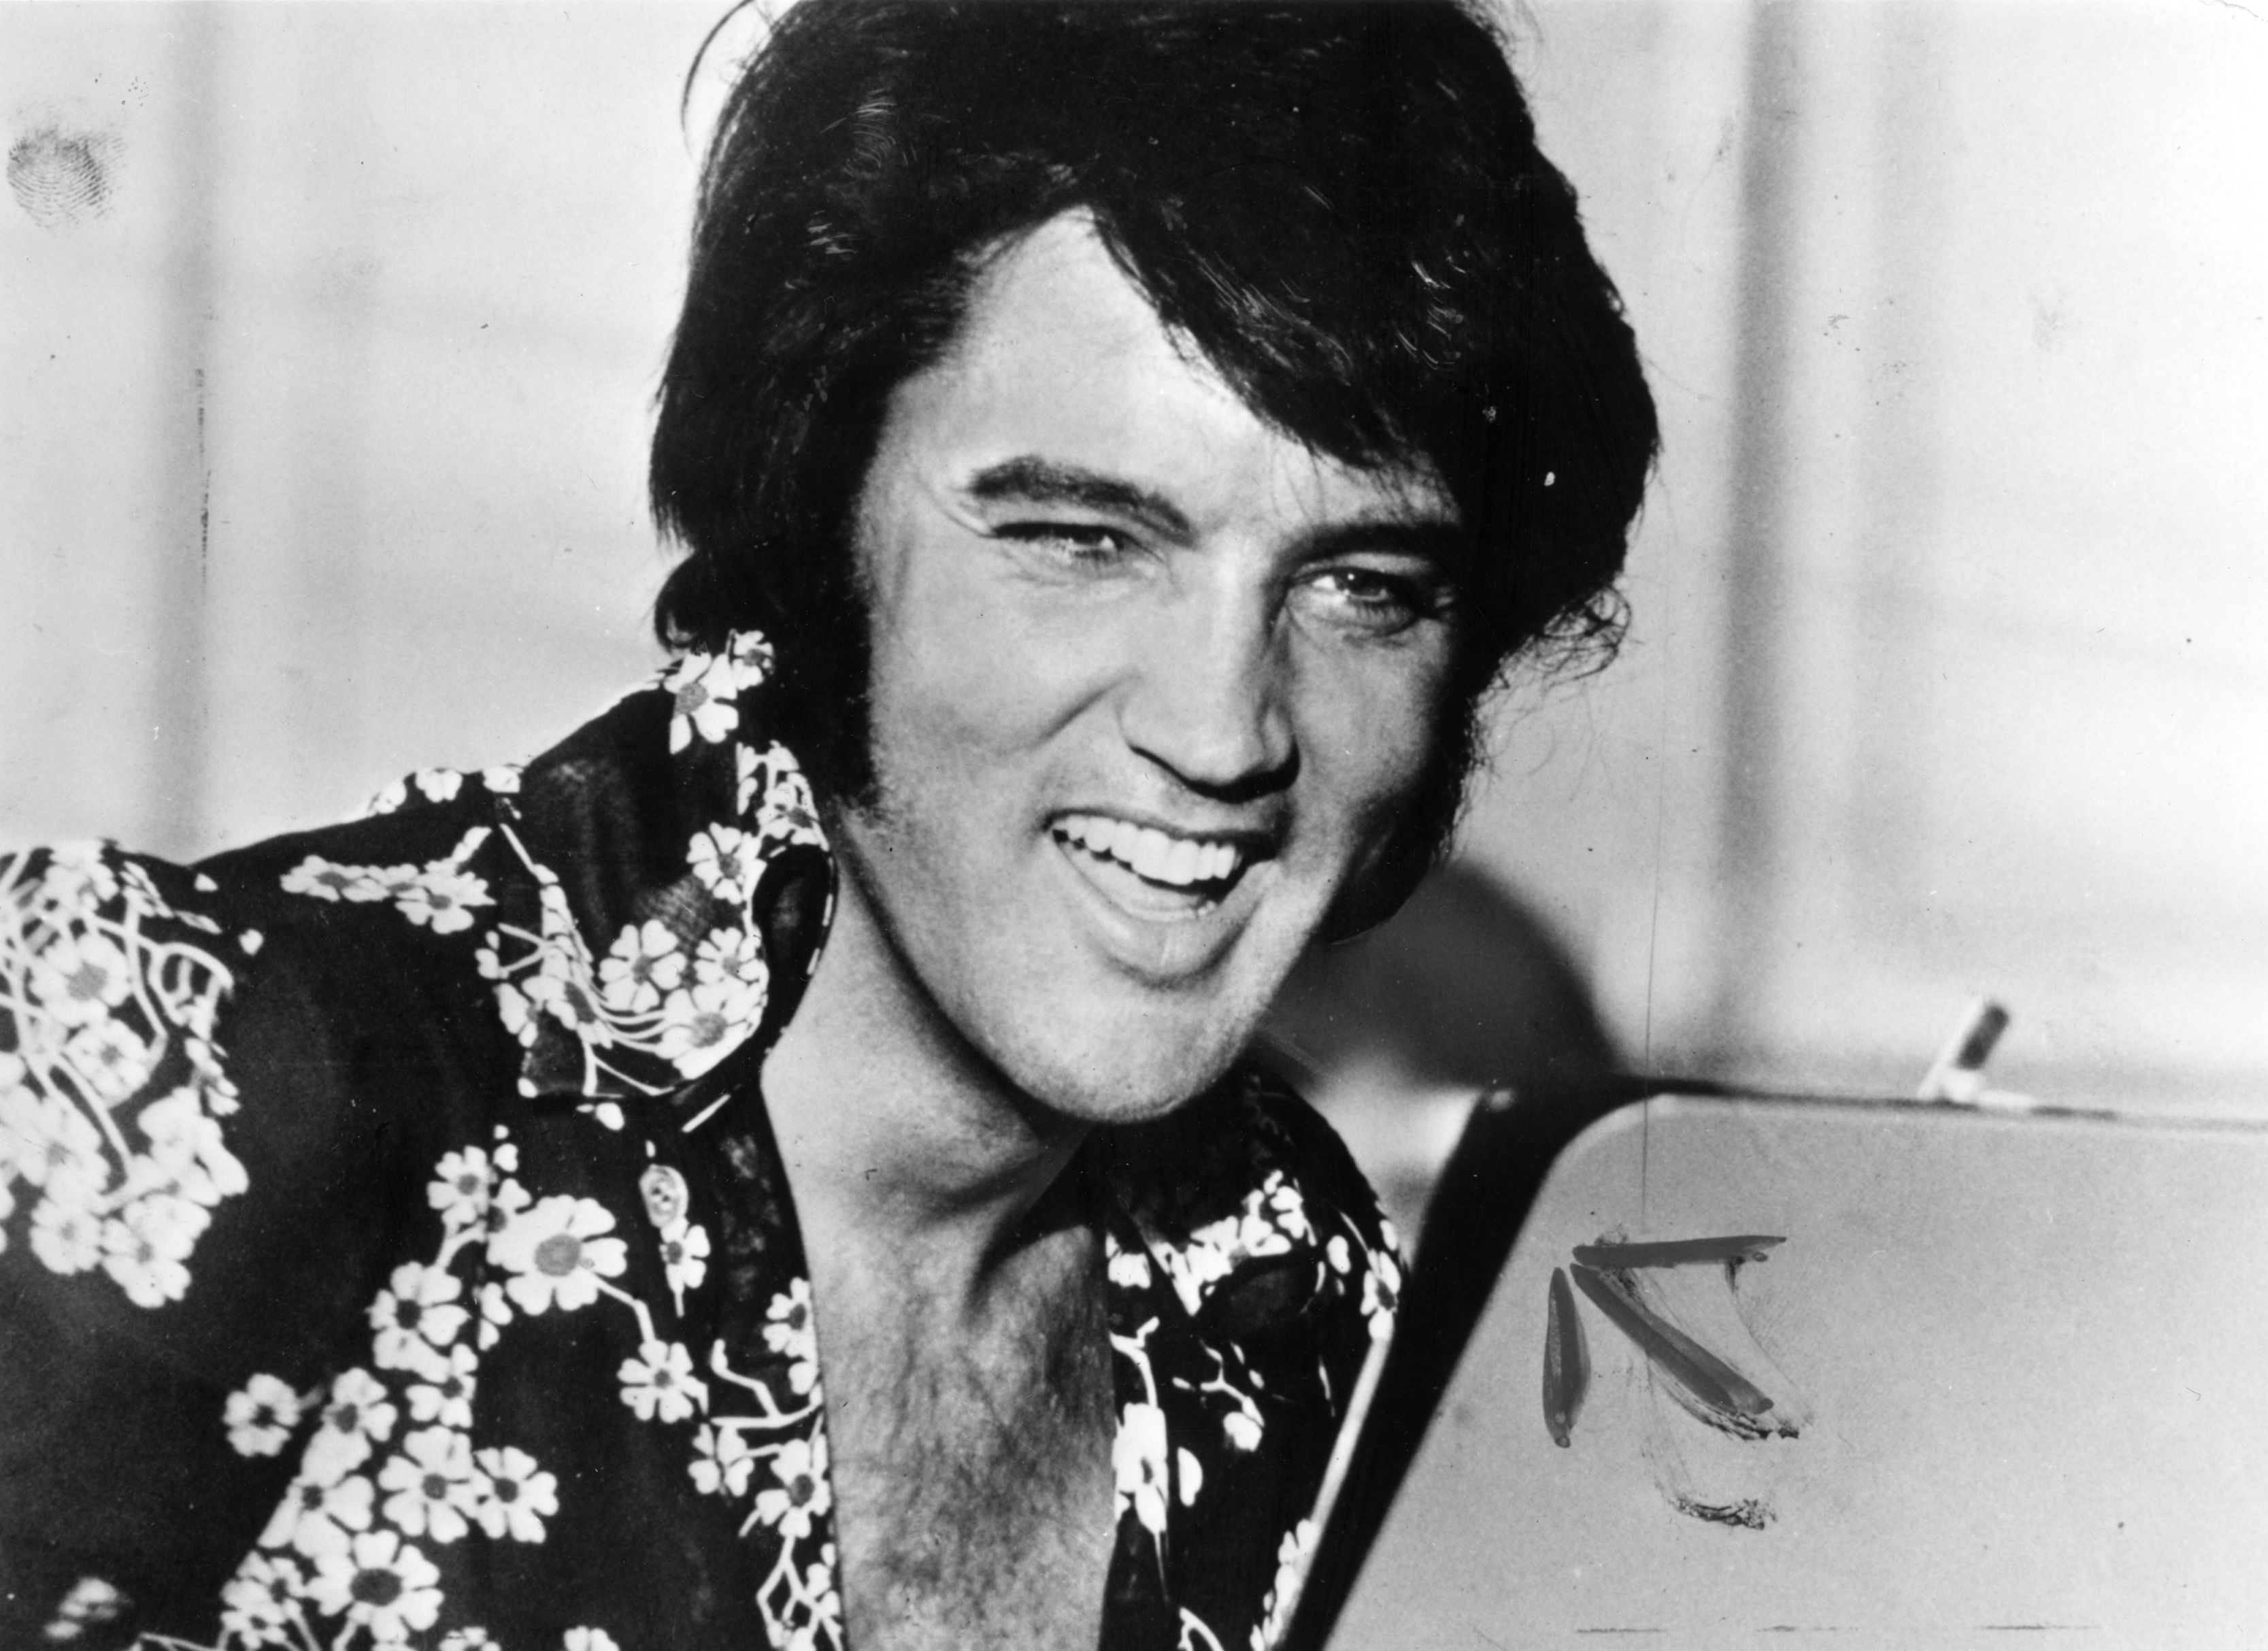 circa 1975:  American popular singer and film star Elvis Presley (1935 - 1977), to his fans the undisputed 'King of Rock 'n'